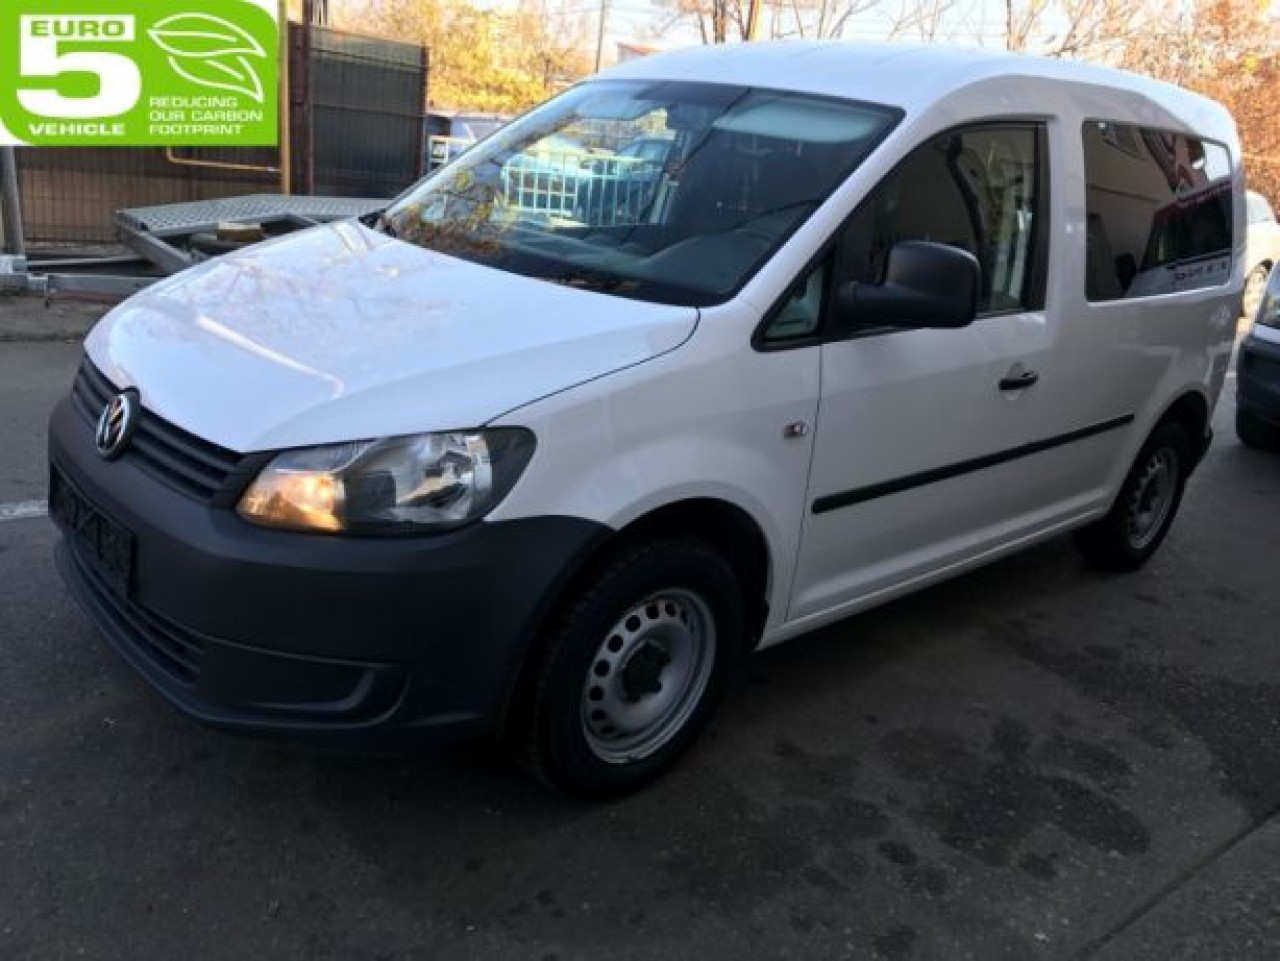 VW Caddy EURO 5,motor 1600 TDI 2011